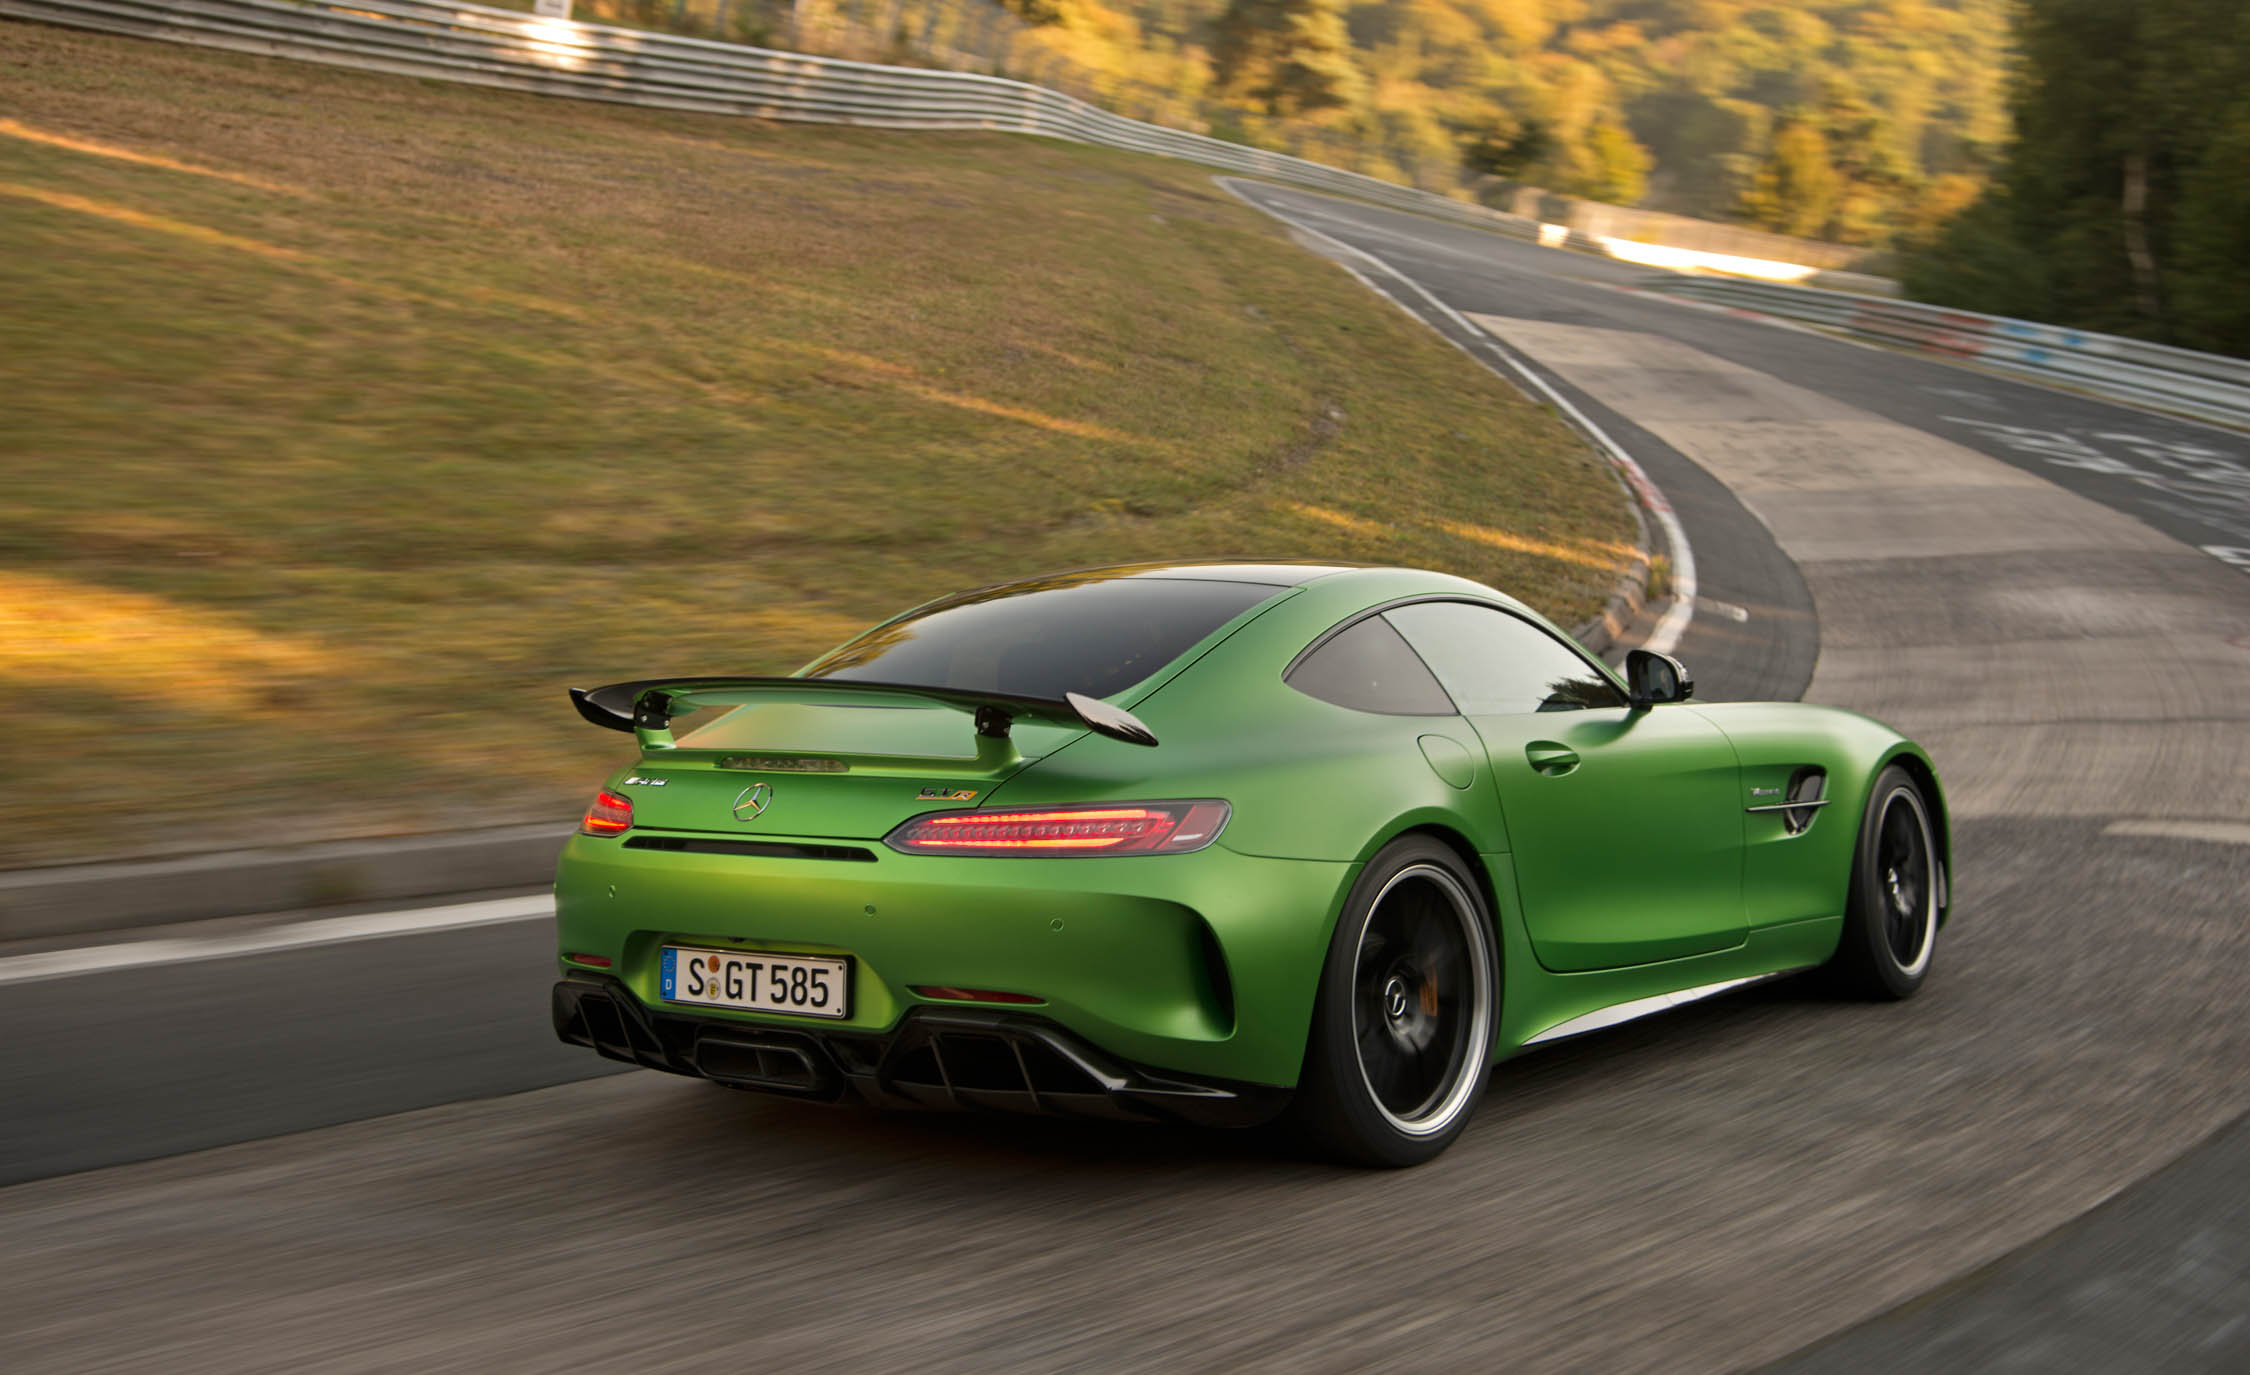 2017 Mercedes Amg Gt R Curcuit Test Rear Side Preview (Photo 7 of 22)